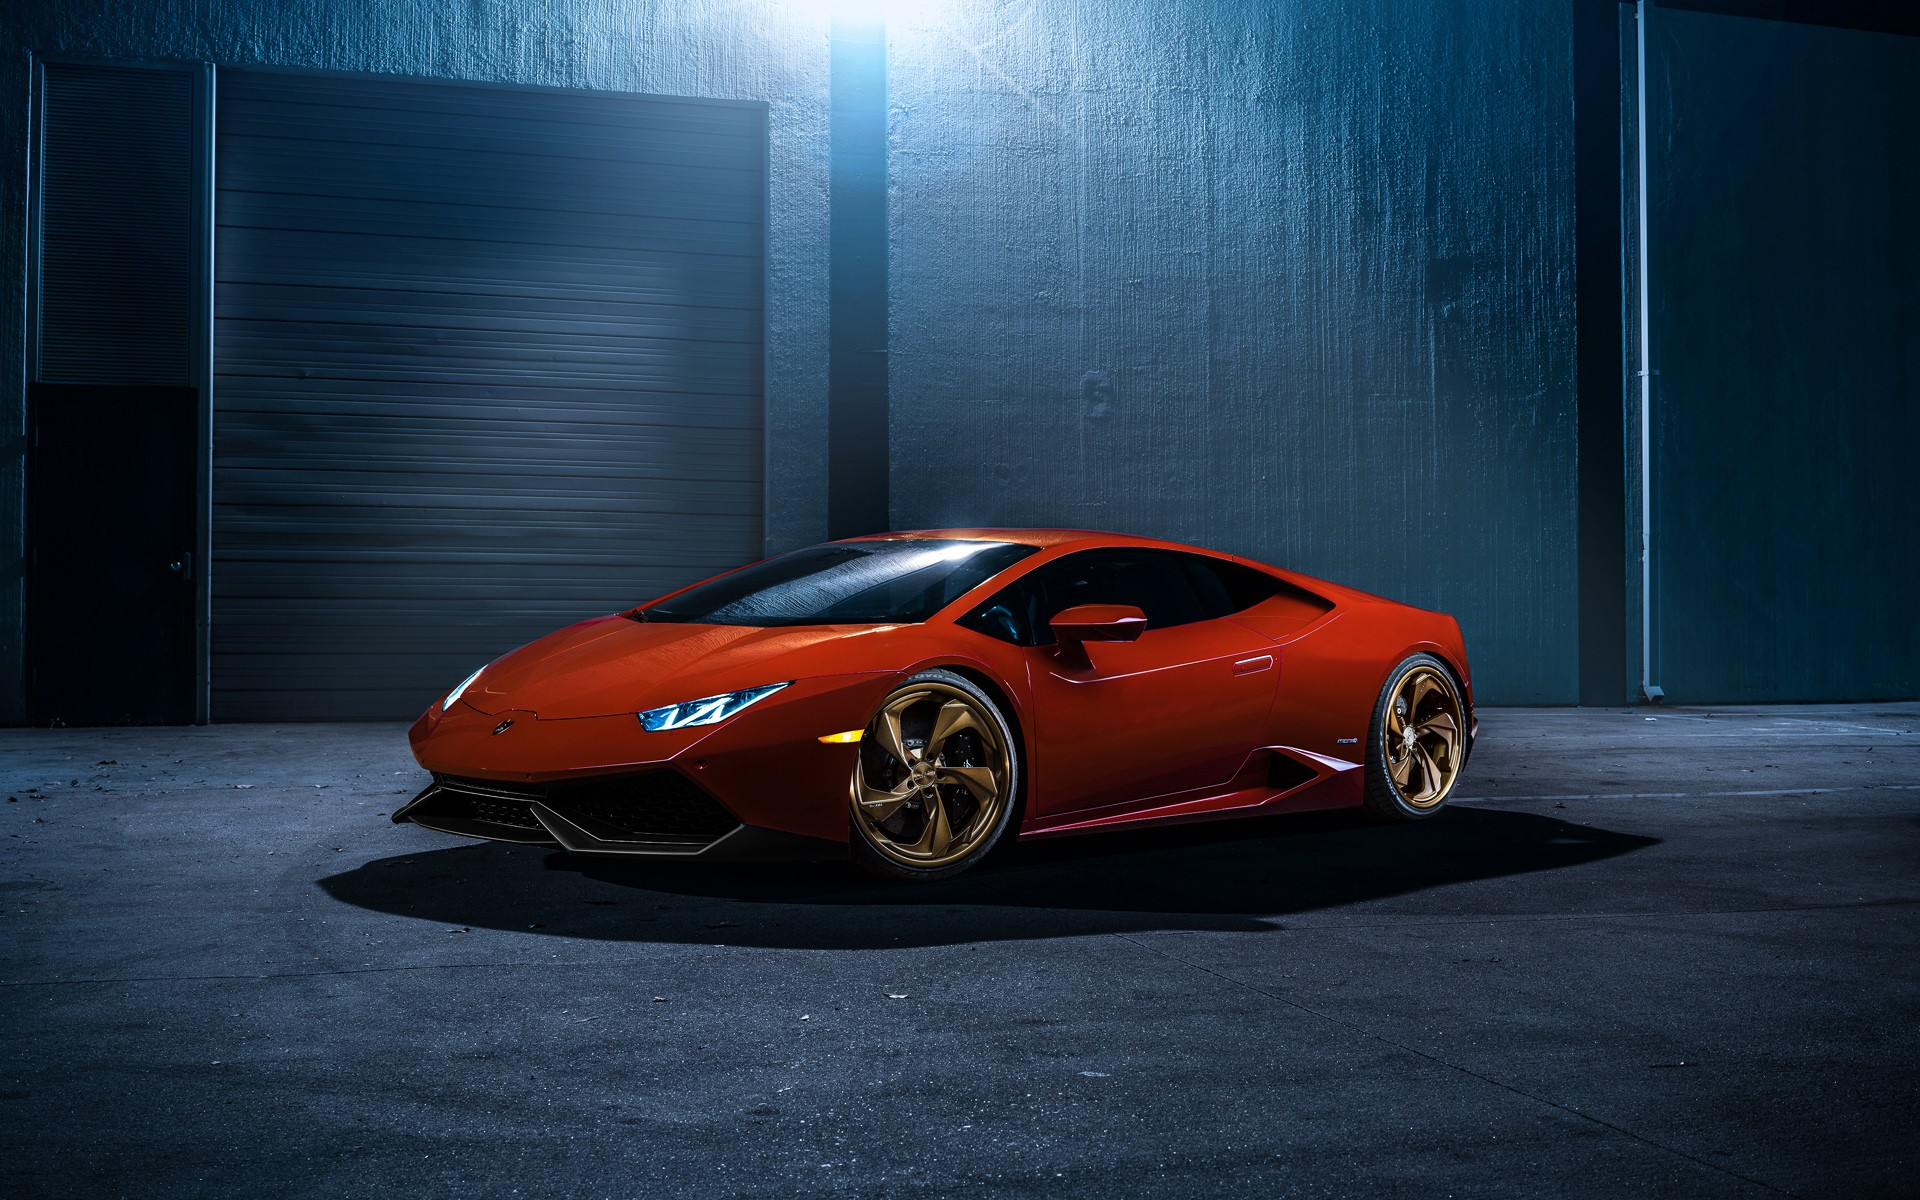 lamborghini huracan gt auto concepts wallpaper hd car. Black Bedroom Furniture Sets. Home Design Ideas